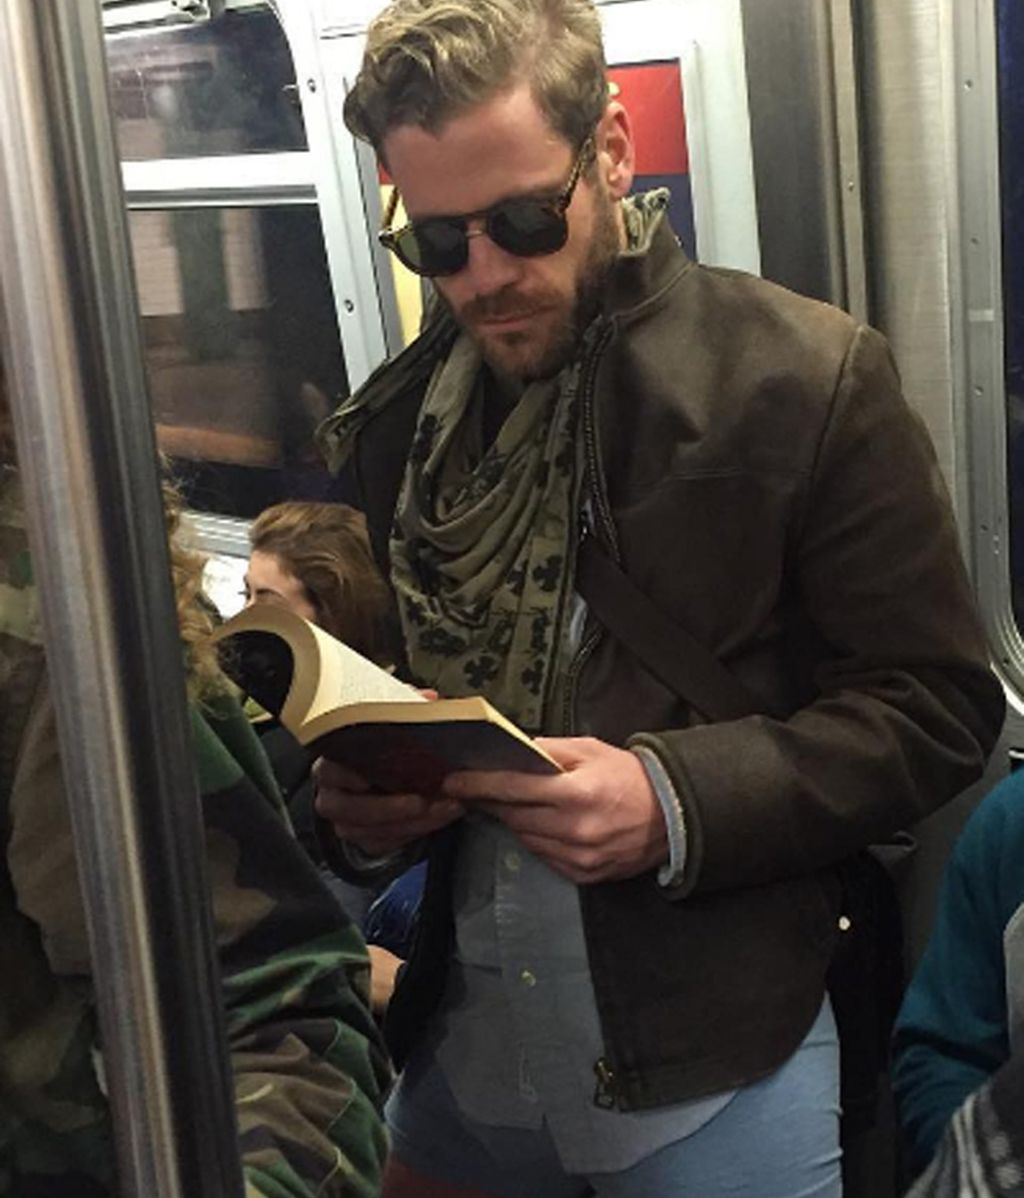 La moda de los 'Hot Dudes Reading' que arrasa en las redes